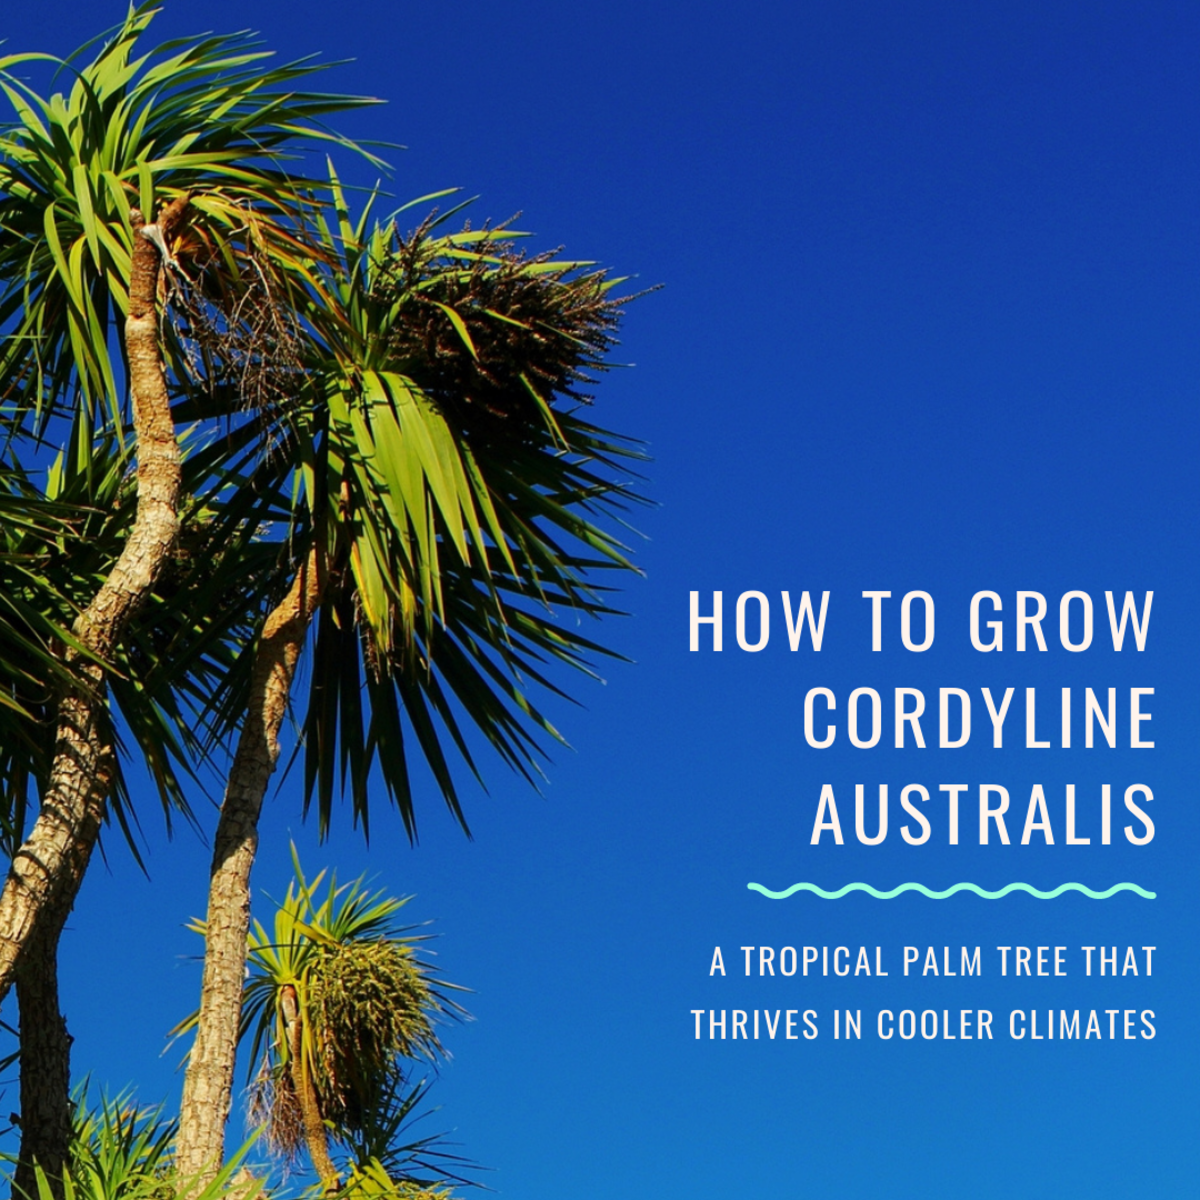 Cordyline Australis: A Tropical Palm Tree for a Cooler Climate